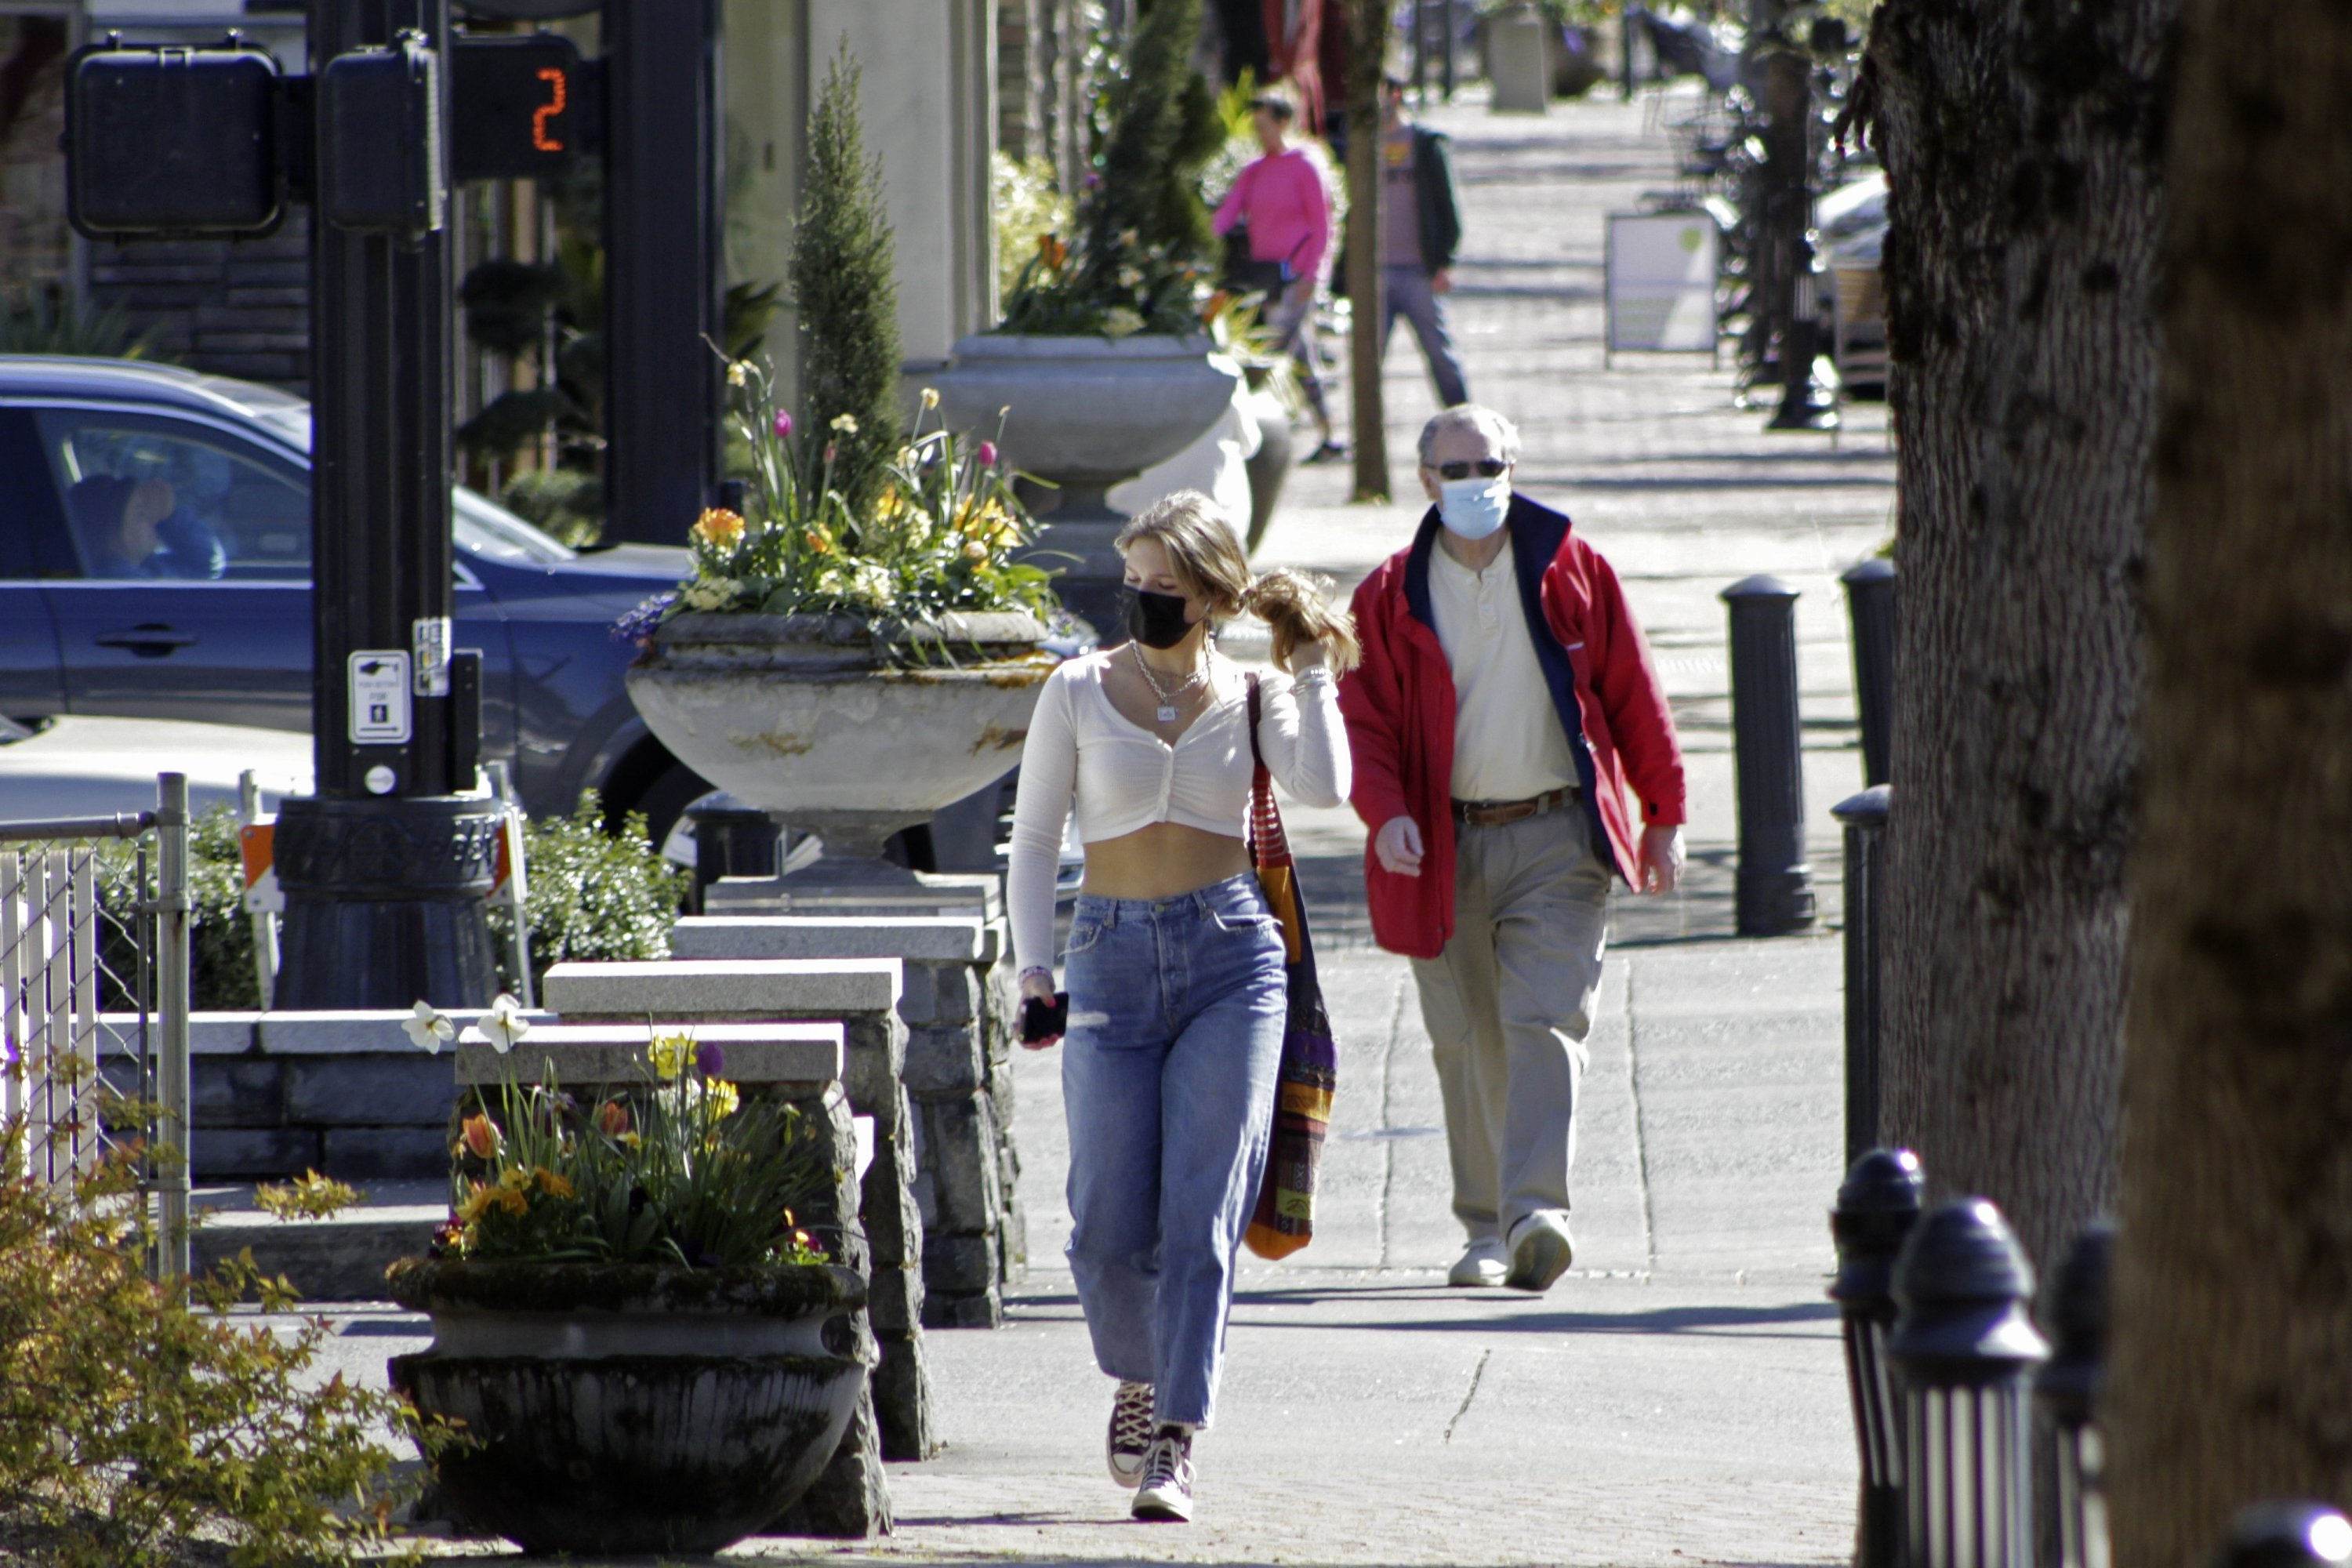 Residents wearing masks walk in downtown Lake Oswego, Oregon, the U.S., April 11, 2021. (AP Photo)